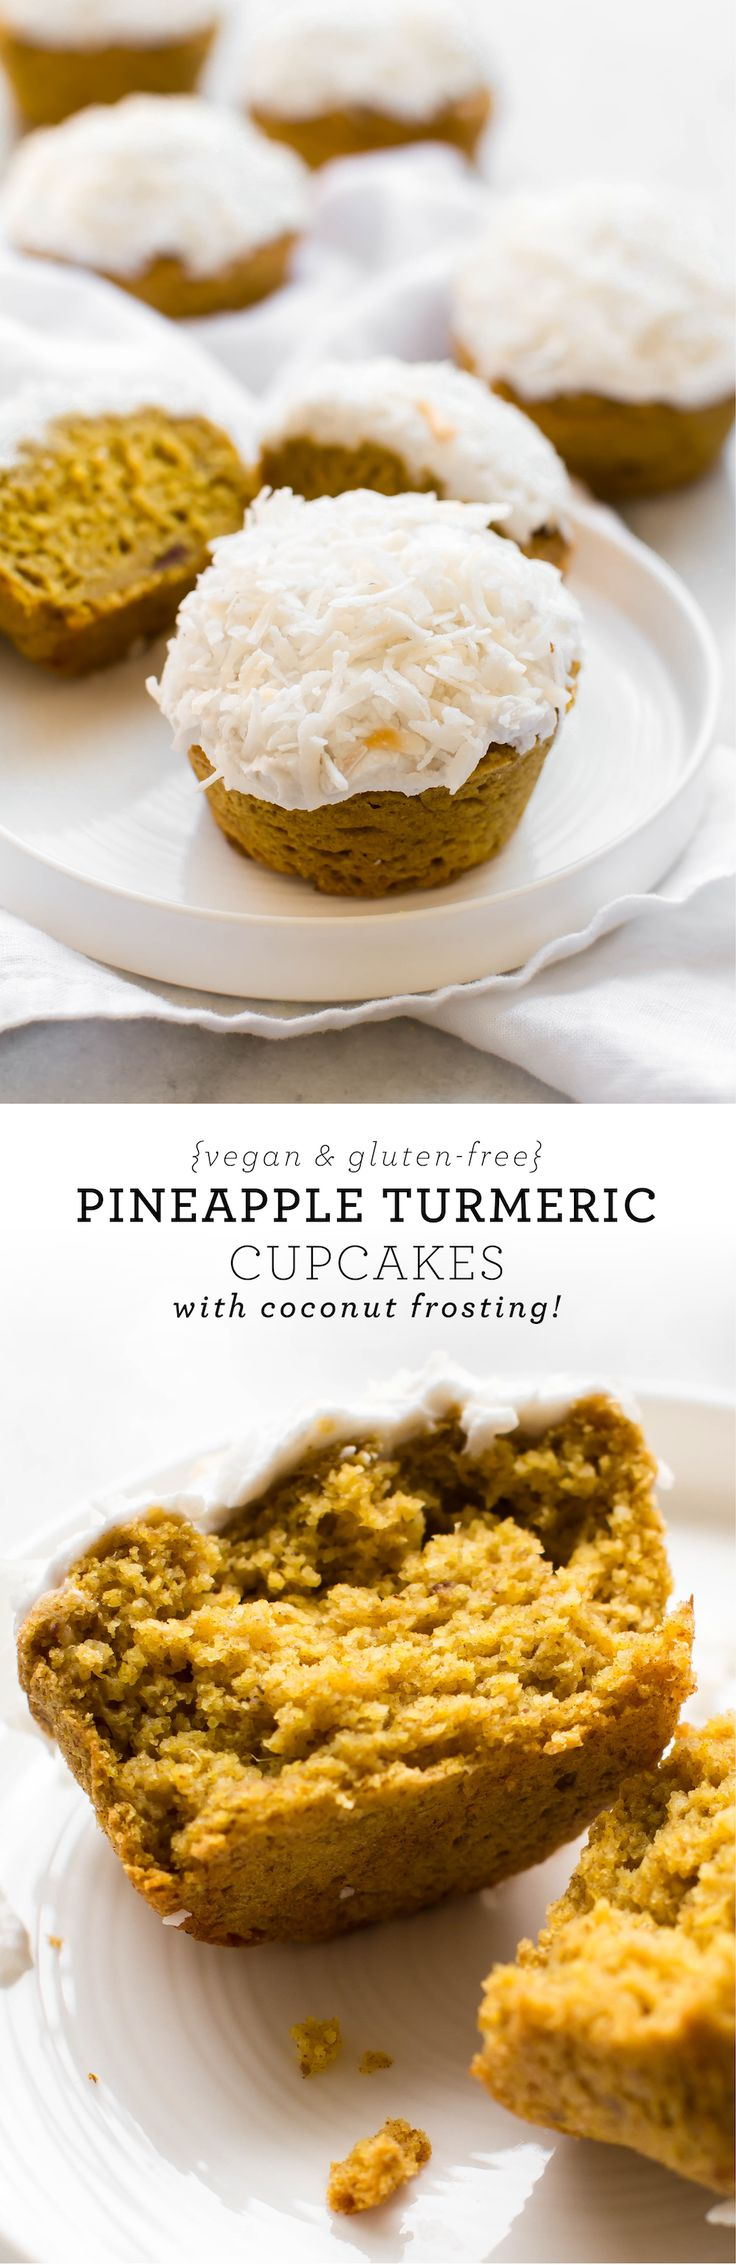 A healthy tropical treat with a superfood sunshine glow and fluffy-sweet coconut frosting! Vegan, gluten-free, oil-free